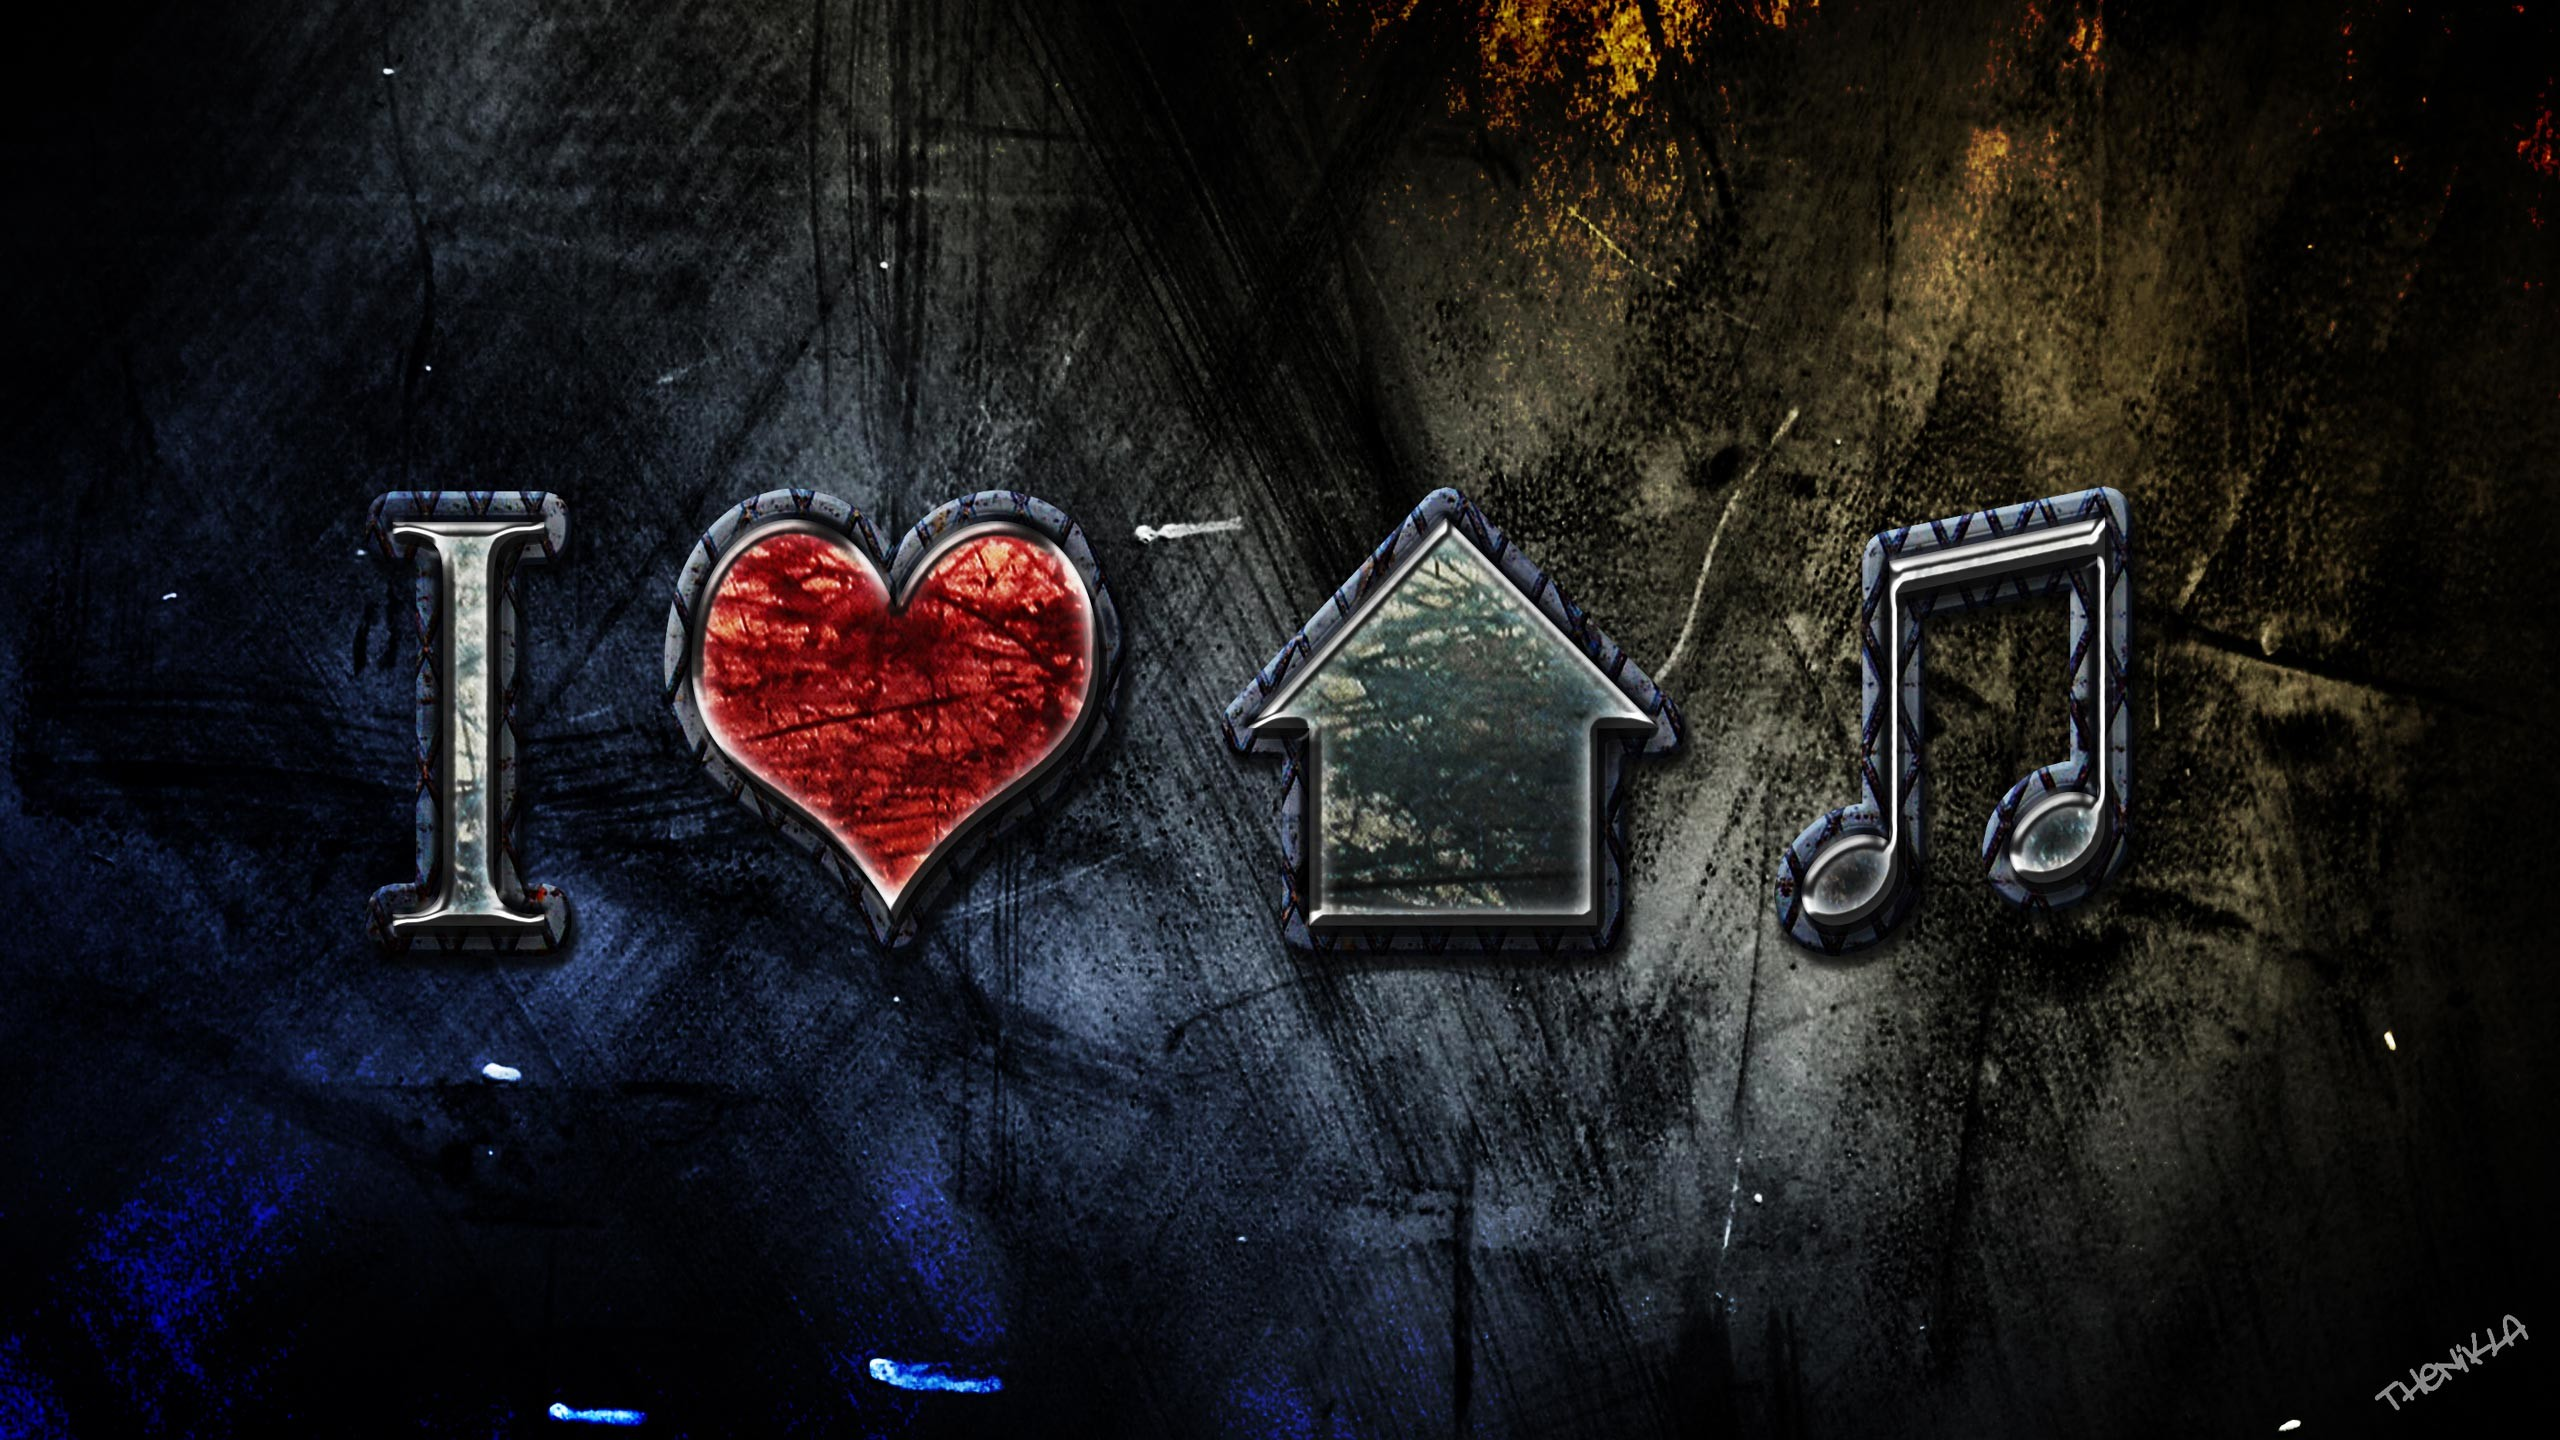 Love House Music Wallpaper – MixHD wallpapers